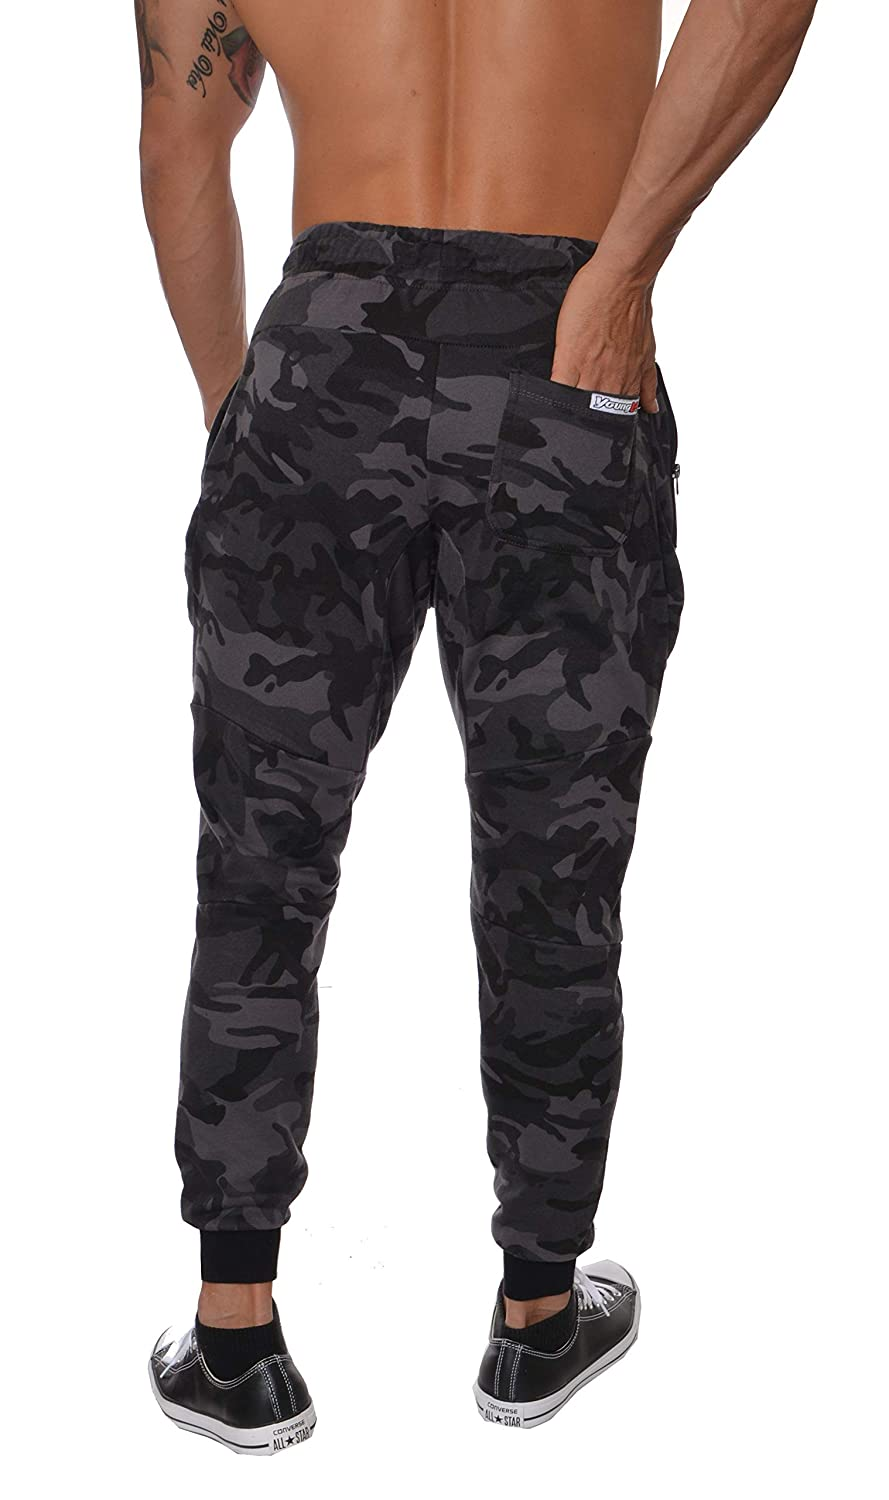 305e08df5bdb YoungLA French Terry Cotton Sweatpants Jogger Pants at Amazon Men s  Clothing store